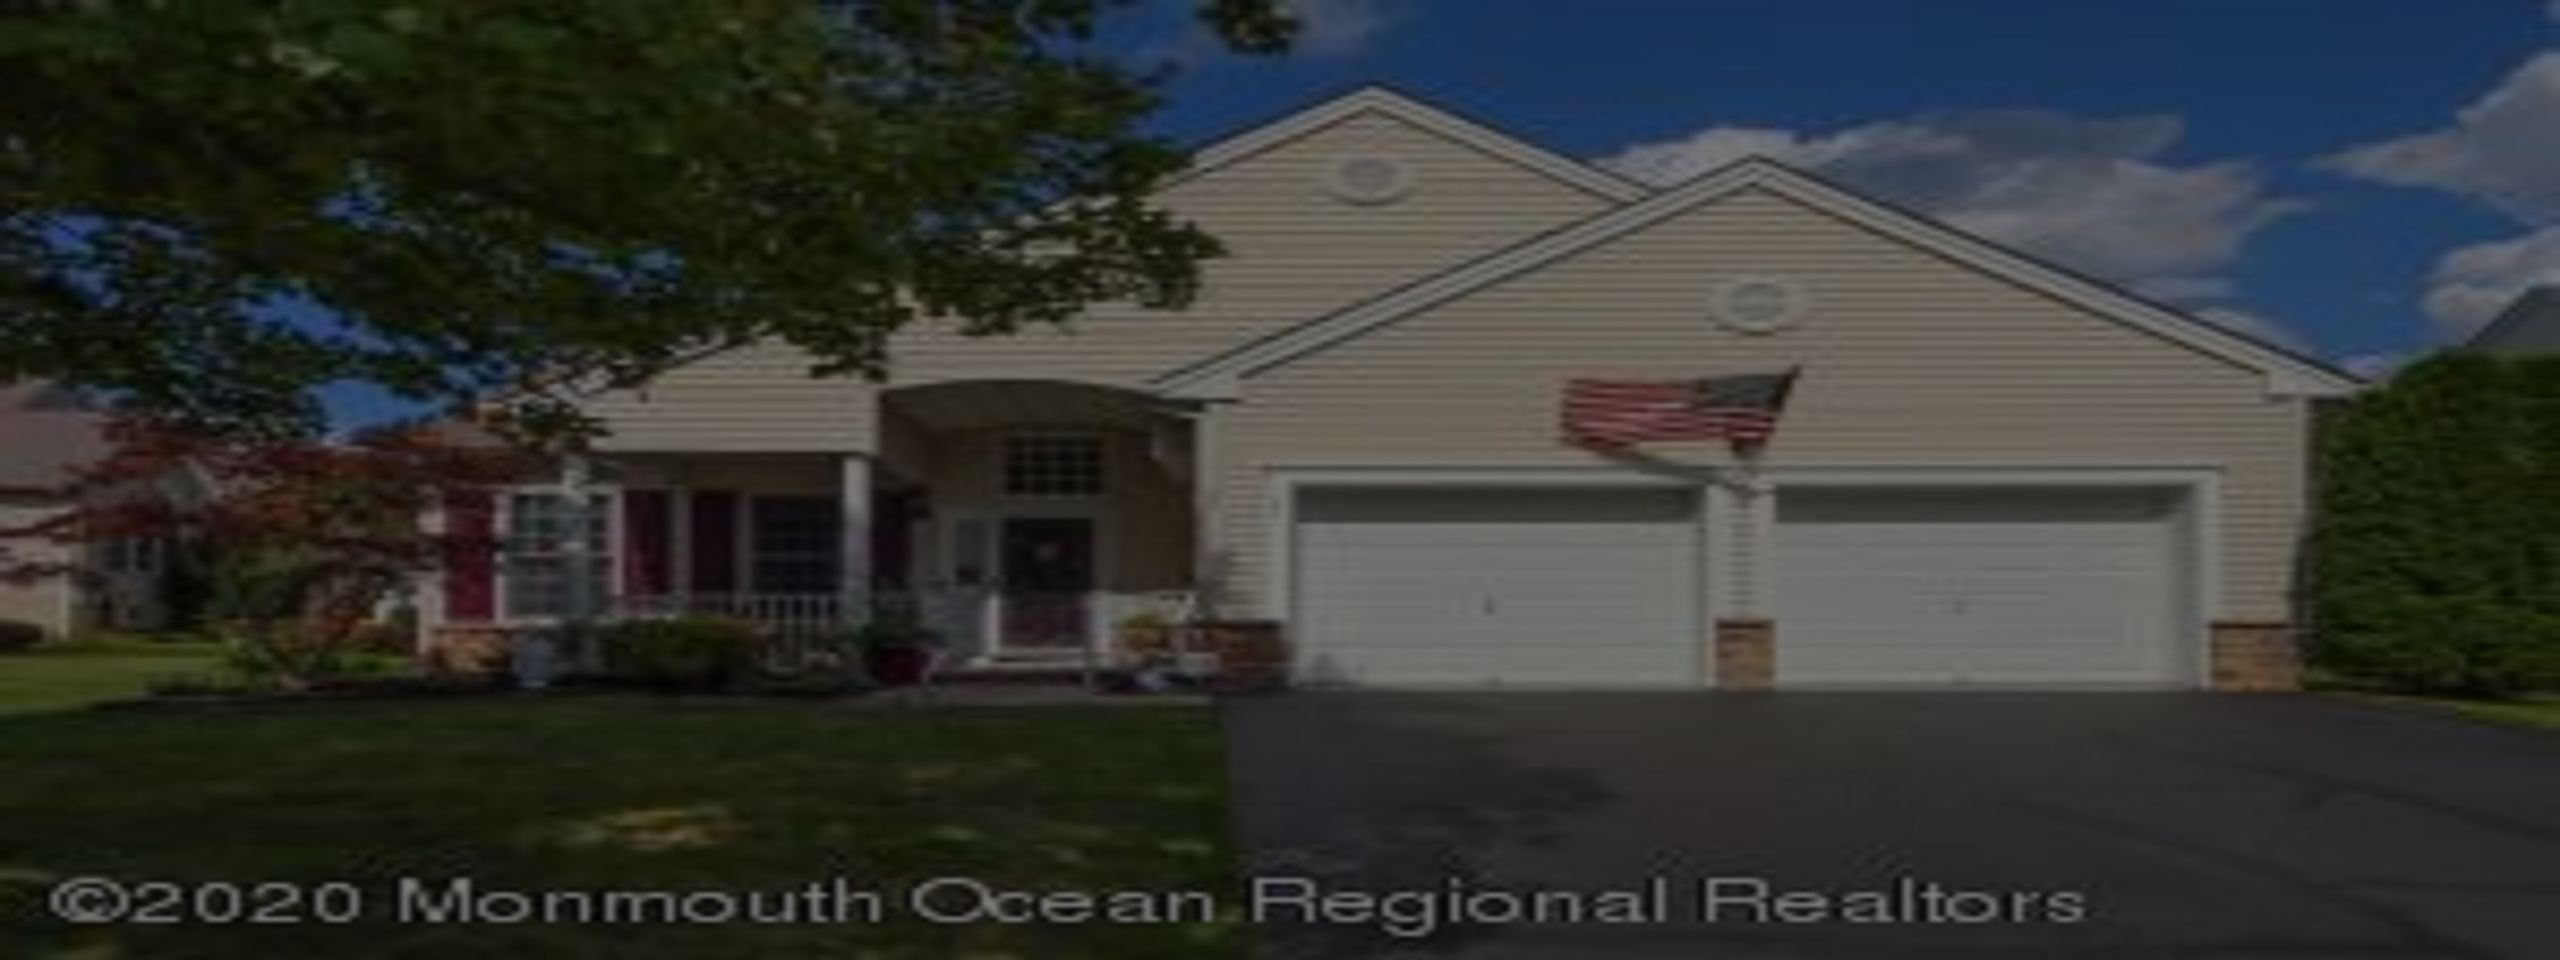 For Sale!  Adult Community Ocean Tswp, NJ